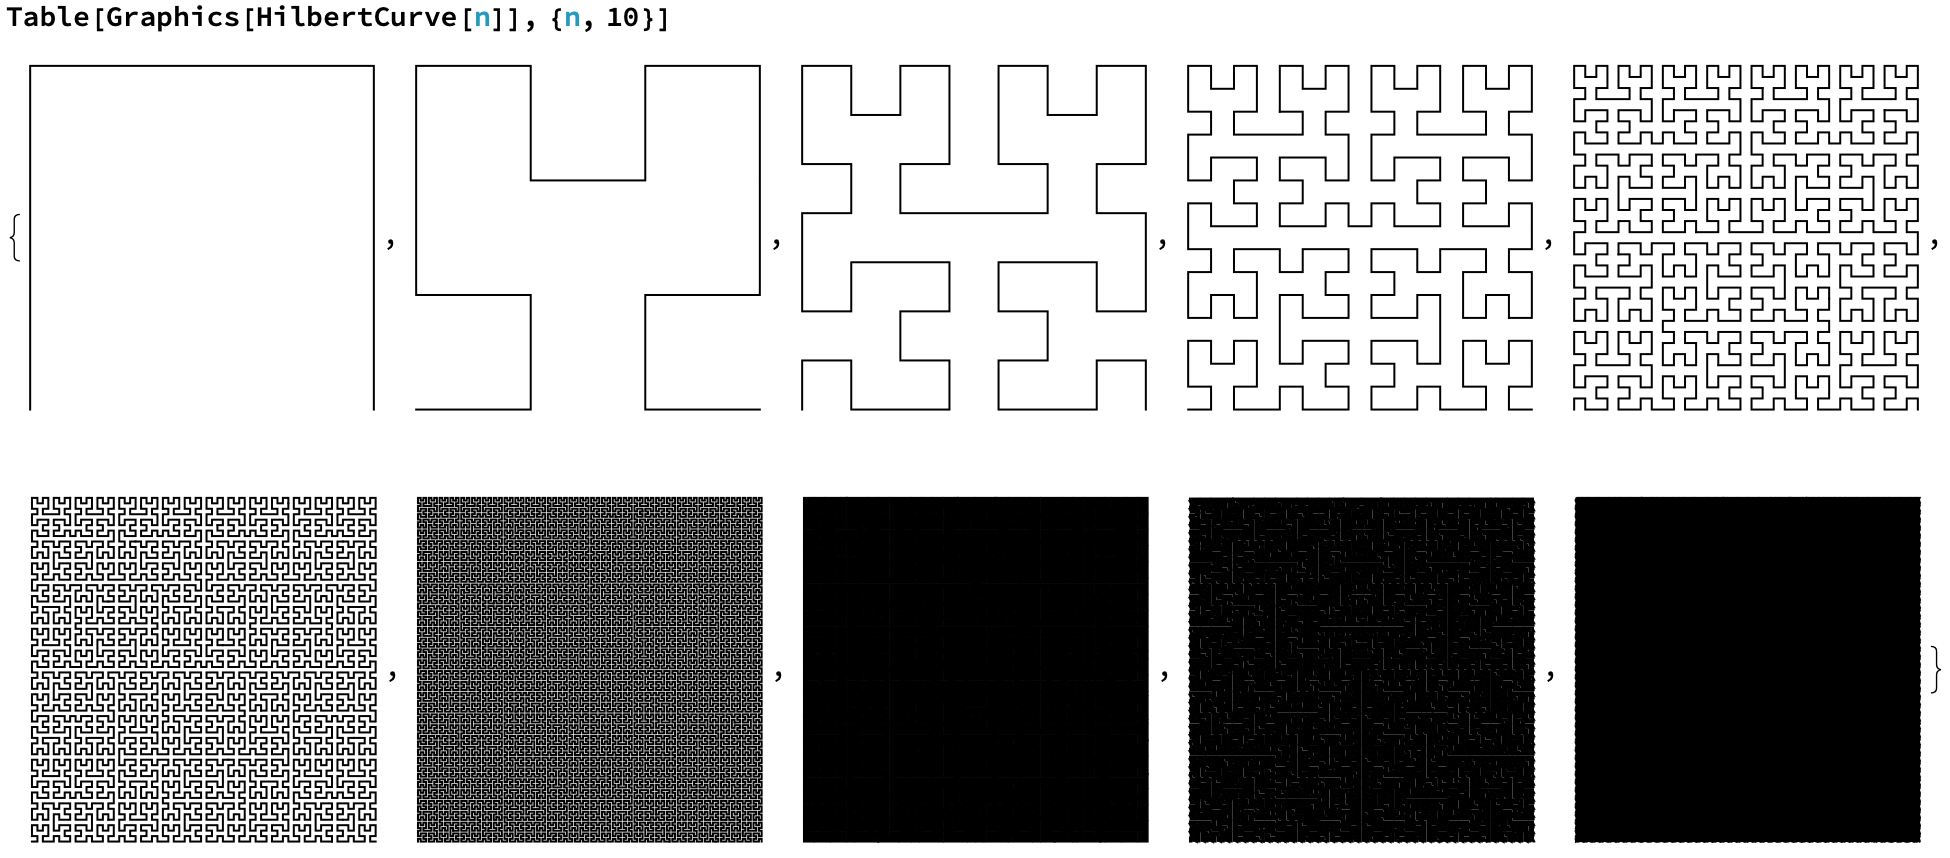 Pseudo-Hilbert Curves from Order 1 to 10